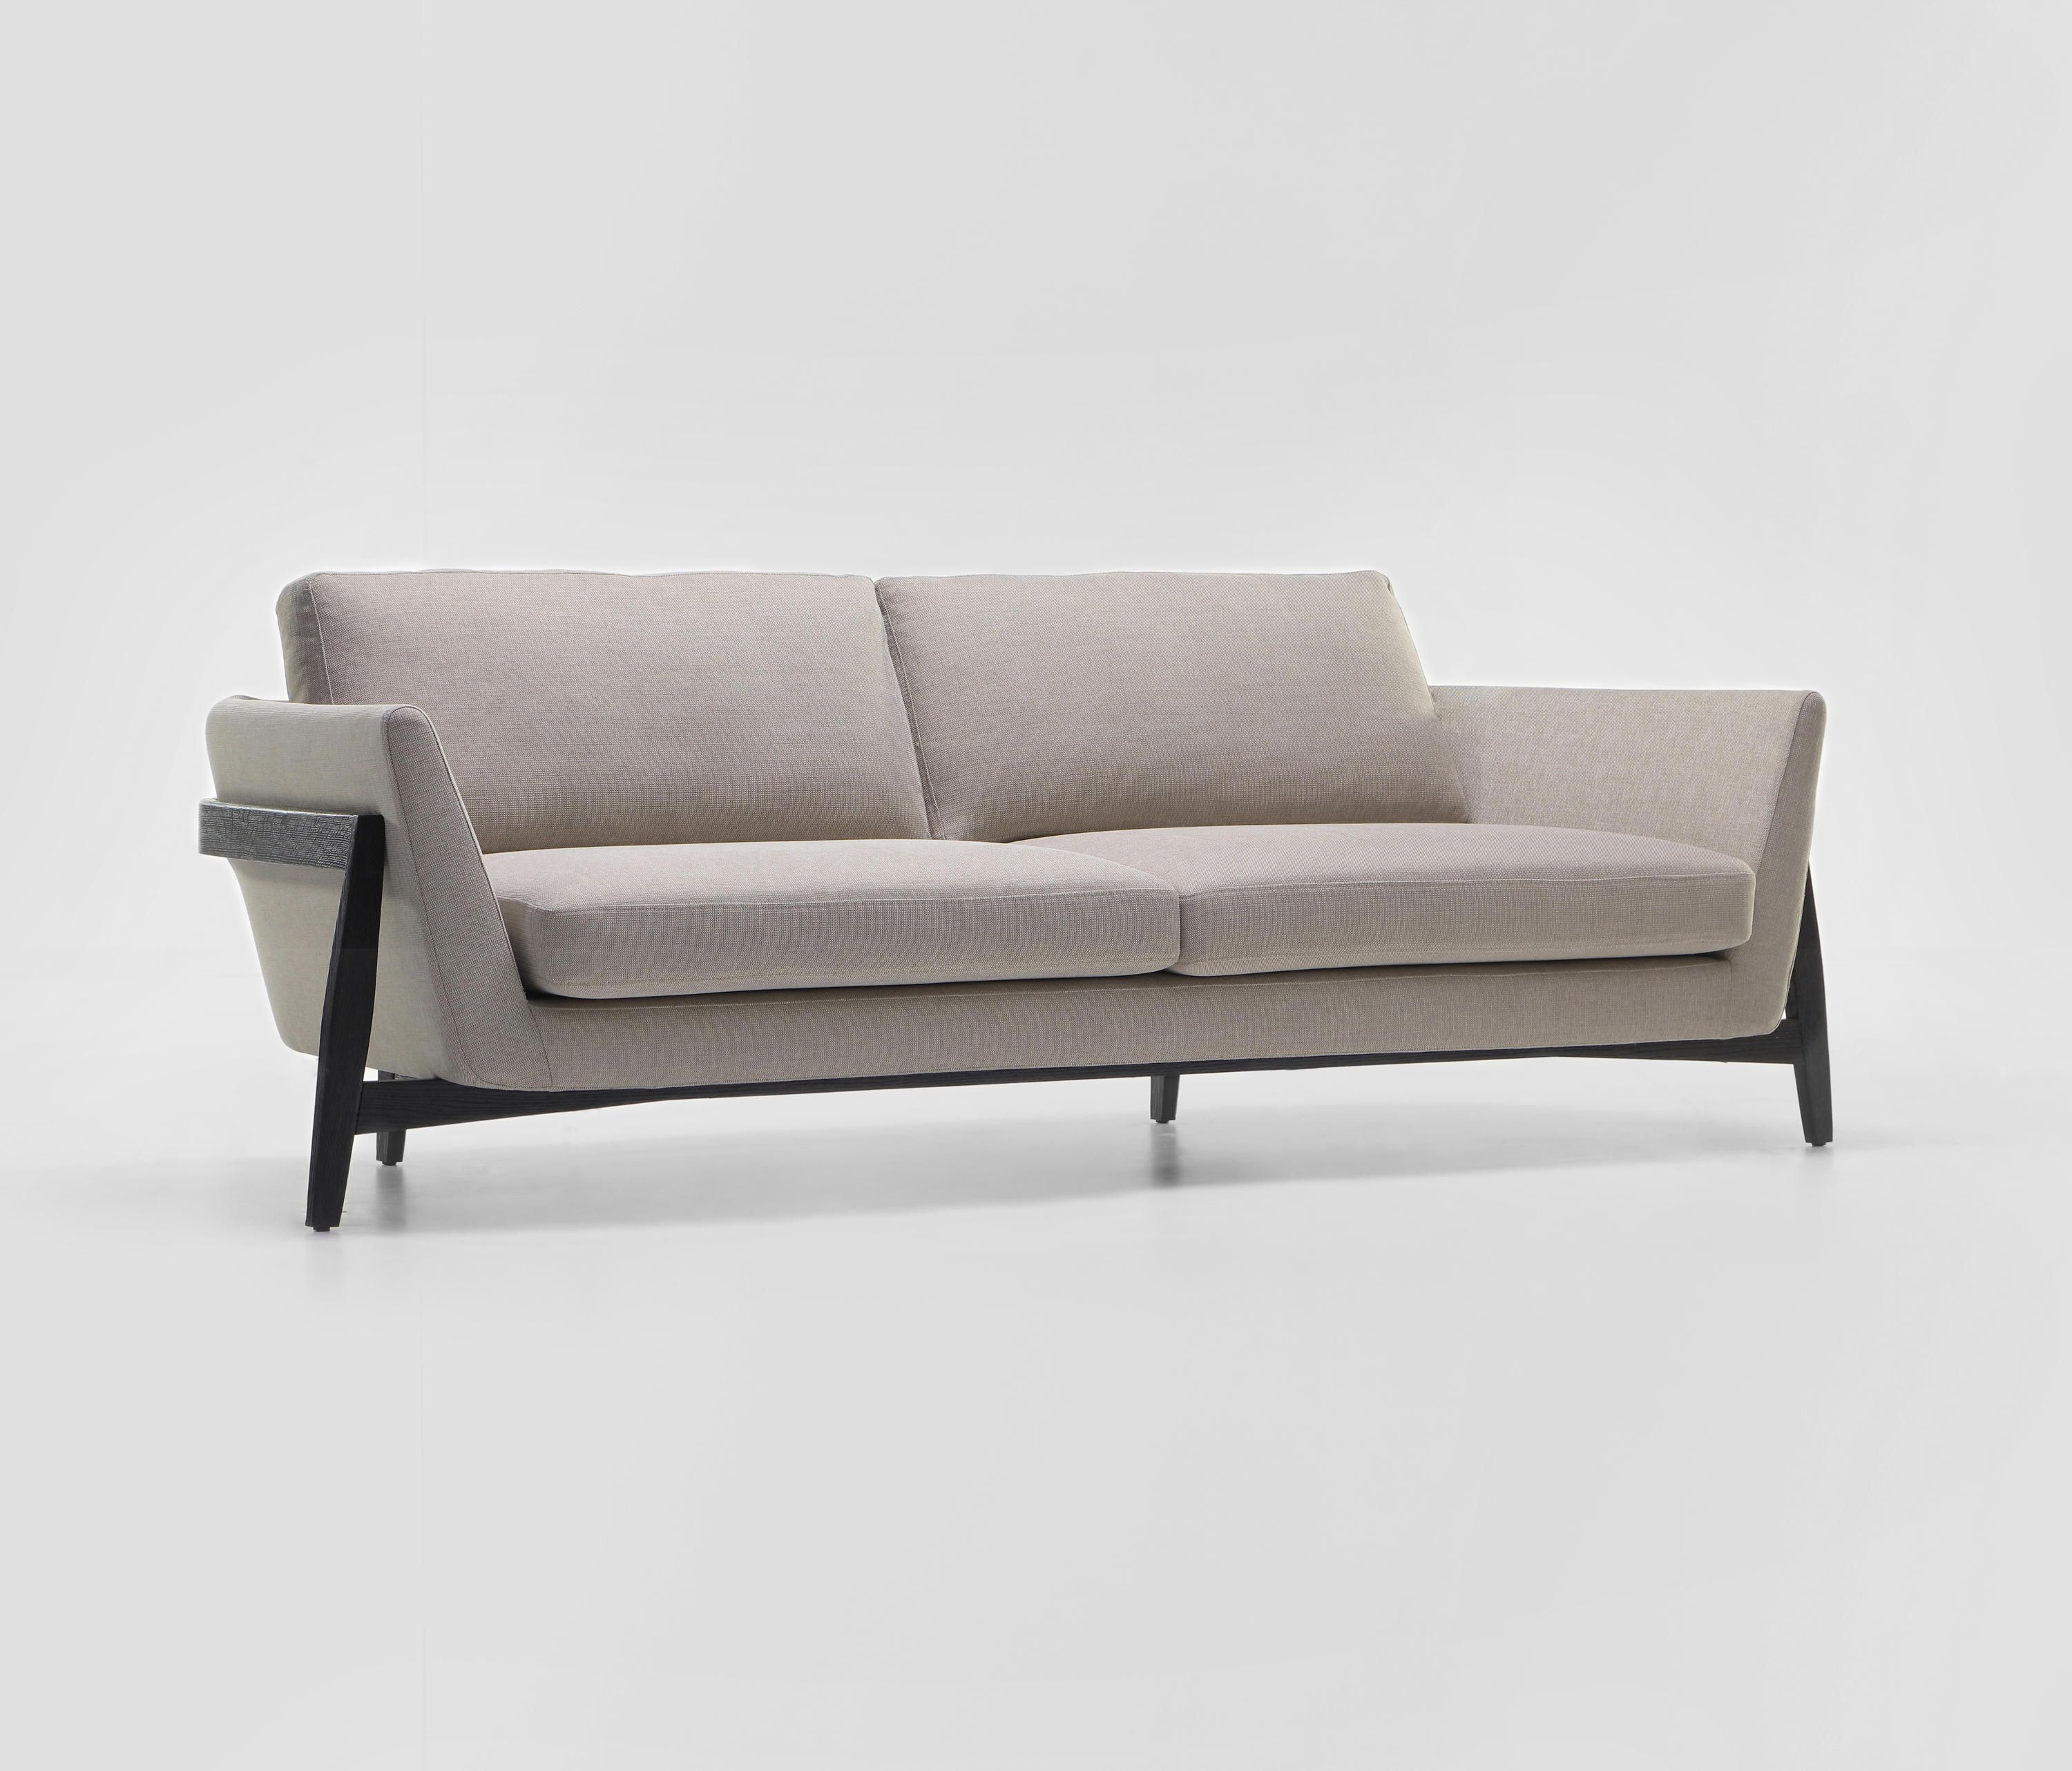 Hay Möbel Händler Clap - Designer Lounge Sofas From Enne ✓ All Information ✓ High-resolution Images ✓ Cads ✓ Catalogues ✓ Co… | Sofa Furniture, Armchair Furniture, Fabric Sofa Design